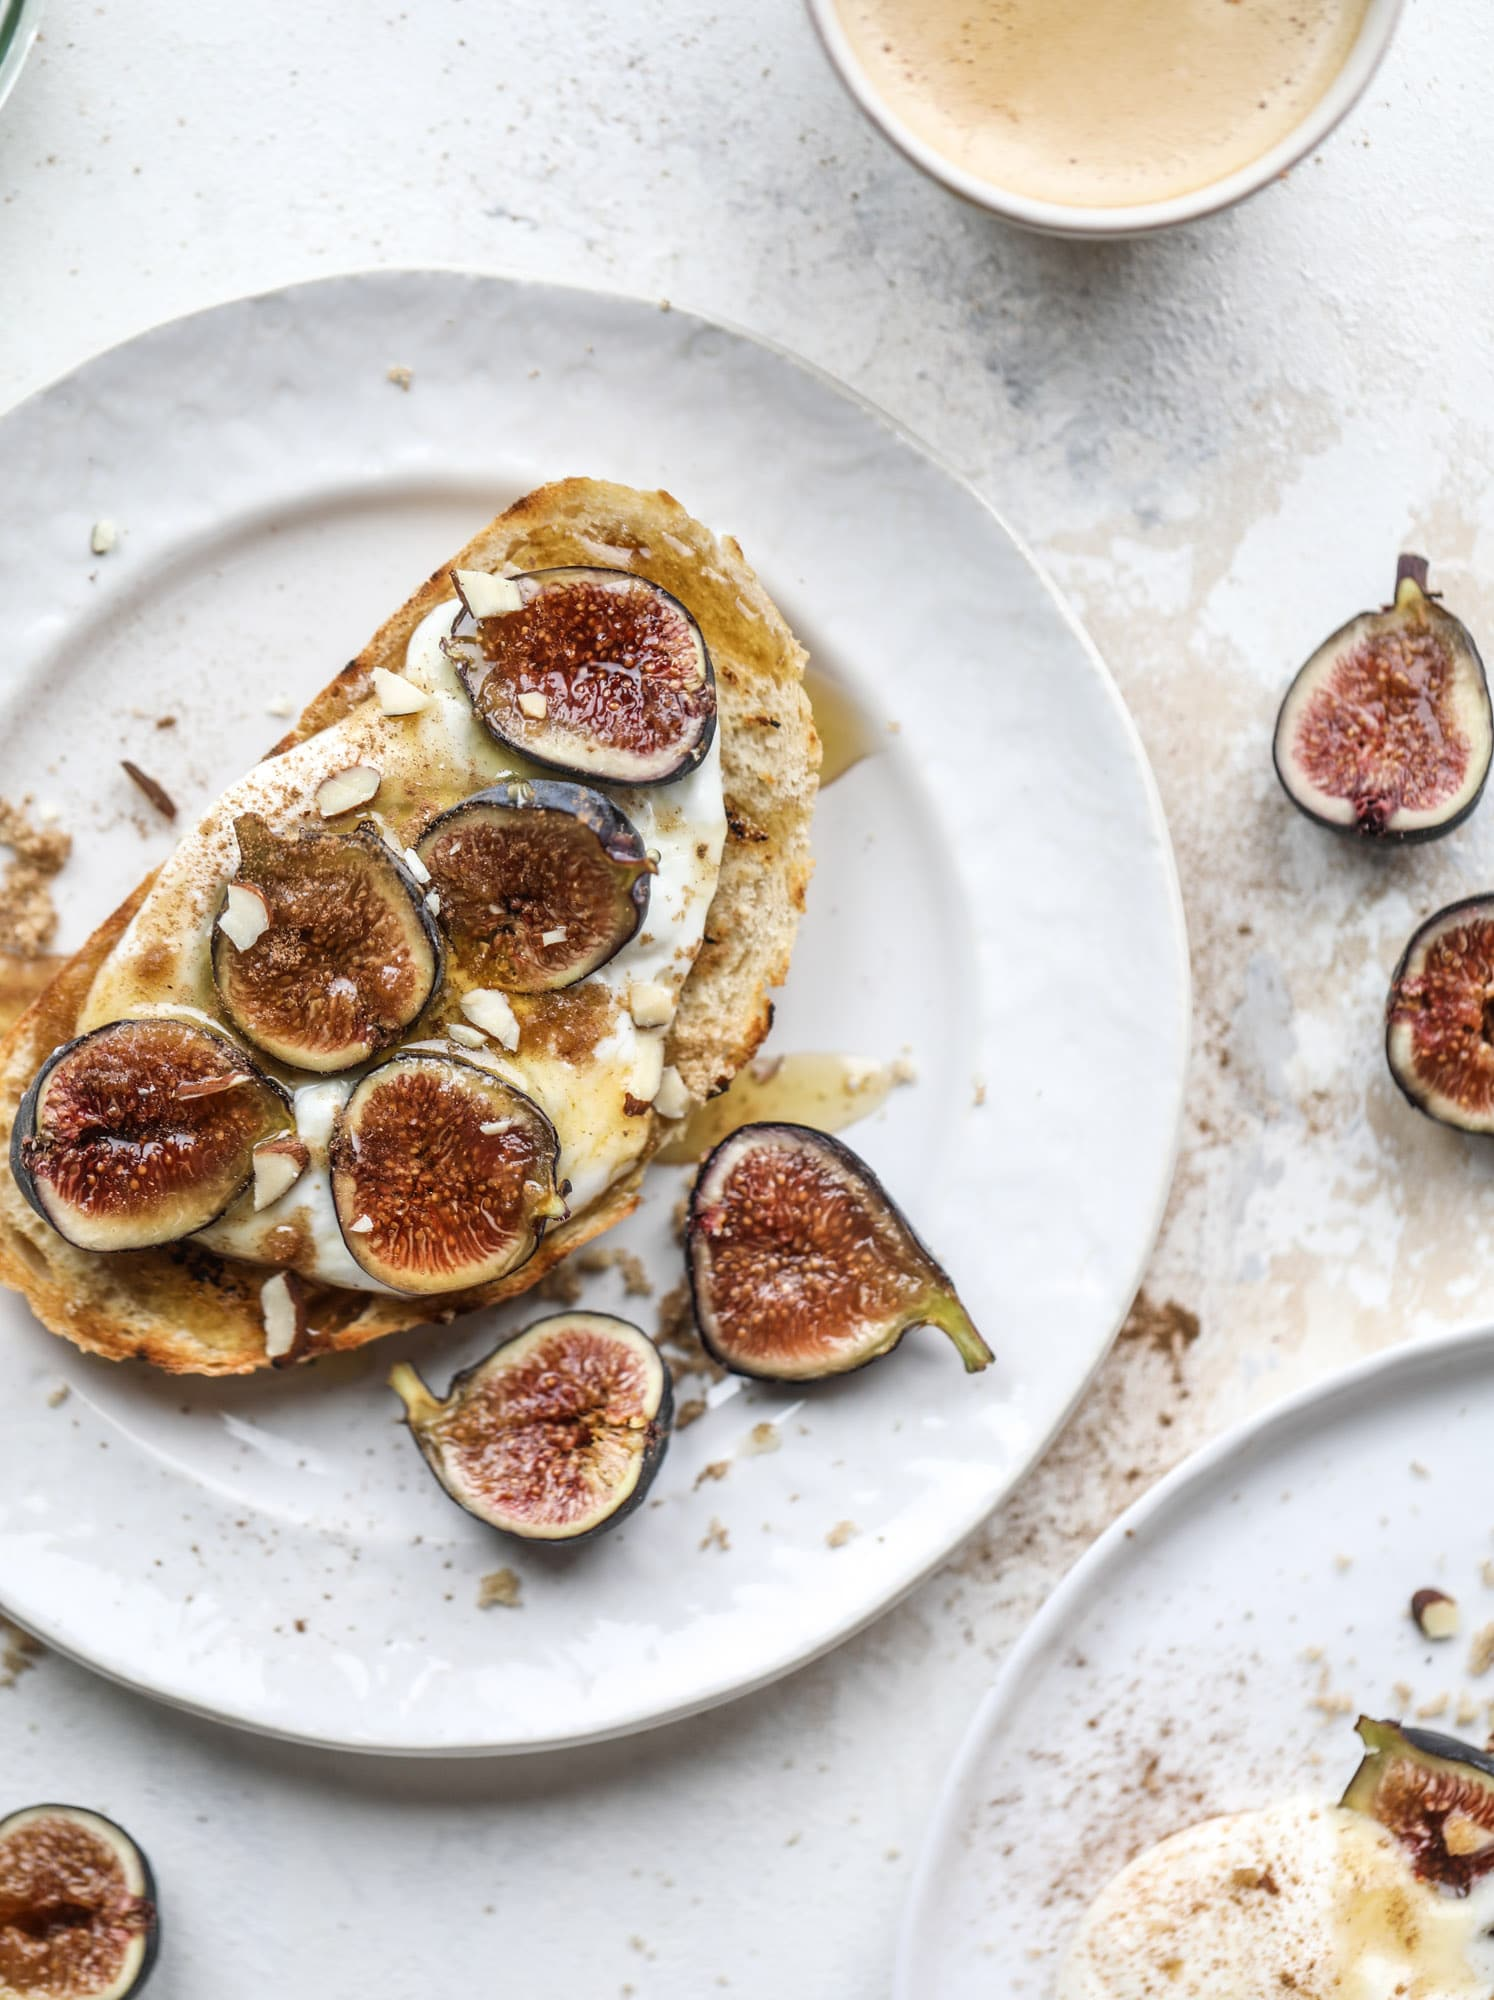 This cinnamon sugar toast is an absolutely dream! It's spread with a cinnamon brown sugar butter, grilled to perfection and served with creamy whipped ricotta cheese, fresh figs, honey, cinnamon and sliced almonds. I howsweeteats.com #cinnamon #sugar #toast #ricotta #figs #breakfast